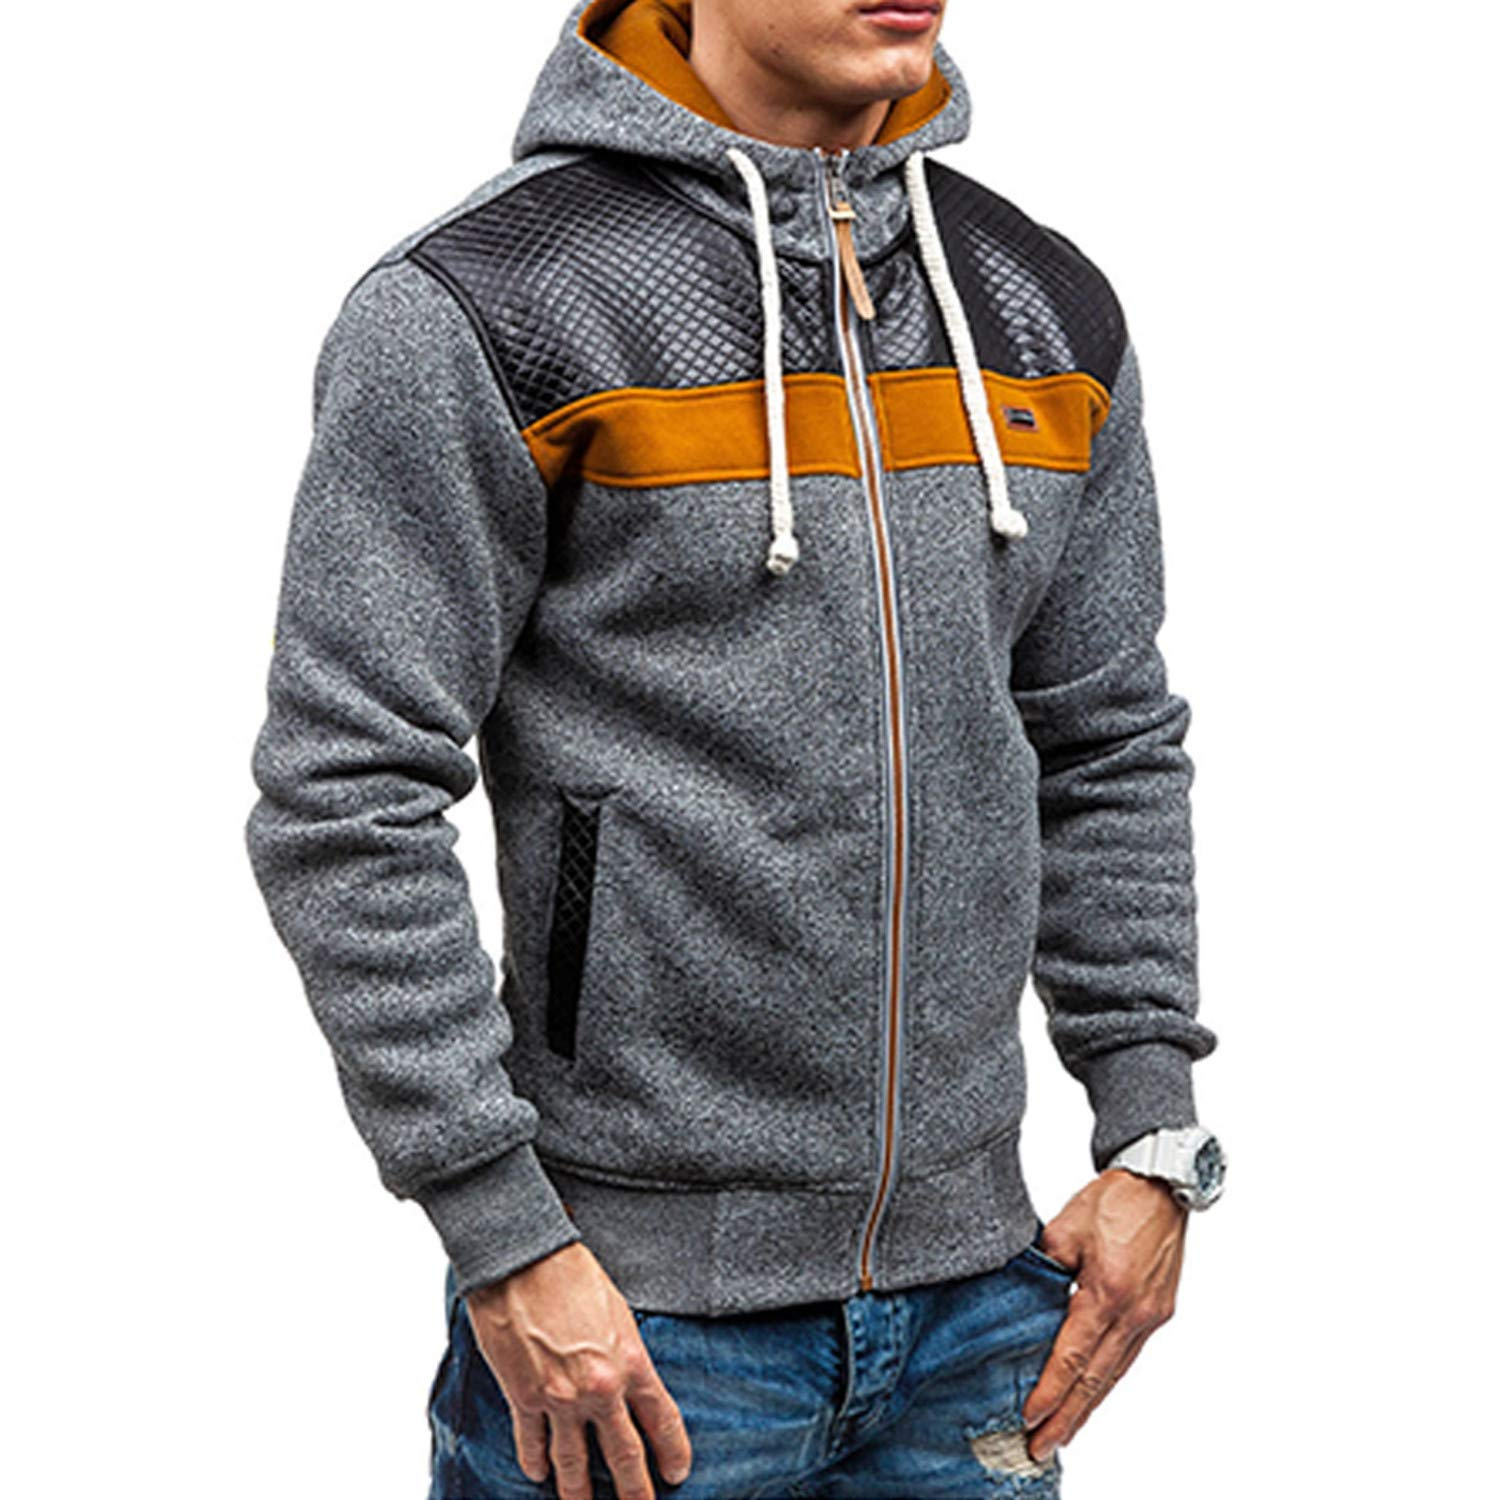 Tianshui Store Fleece Hoodies Men Thicken Cotton Sweatshirt Zipper Cardigan Sportswear Hip Hop